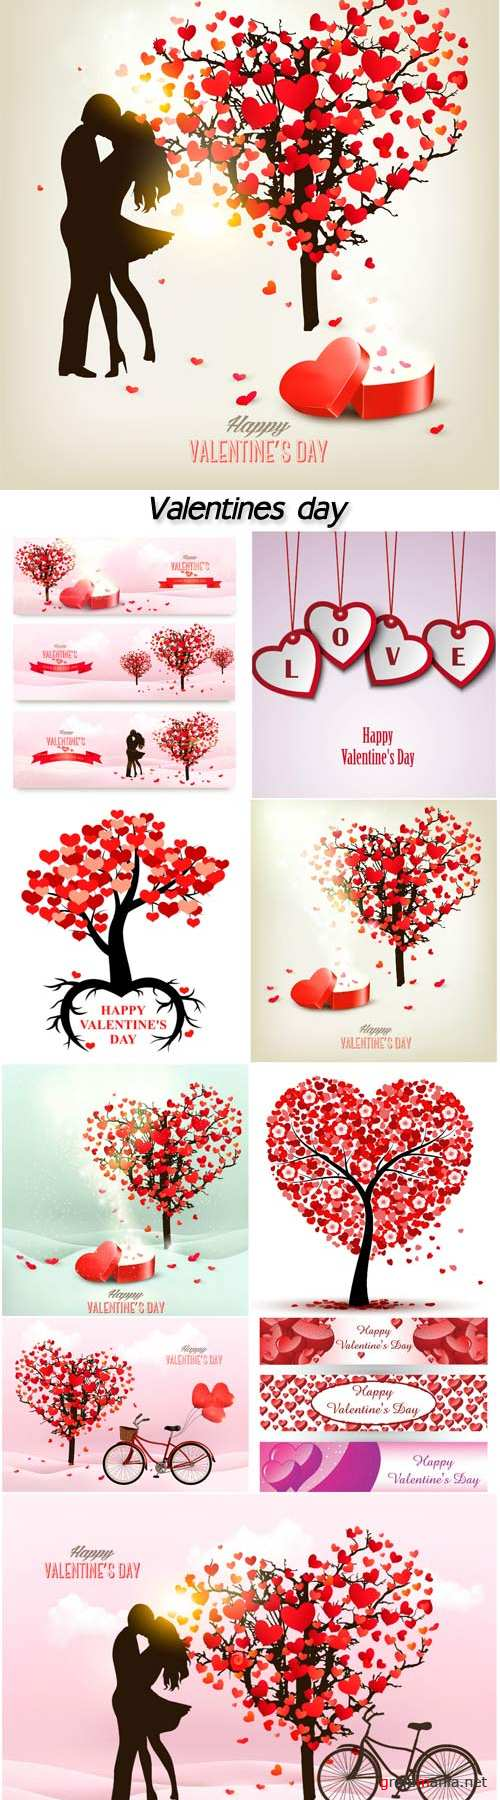 Holiday valentine day background with tree and romance silhouette